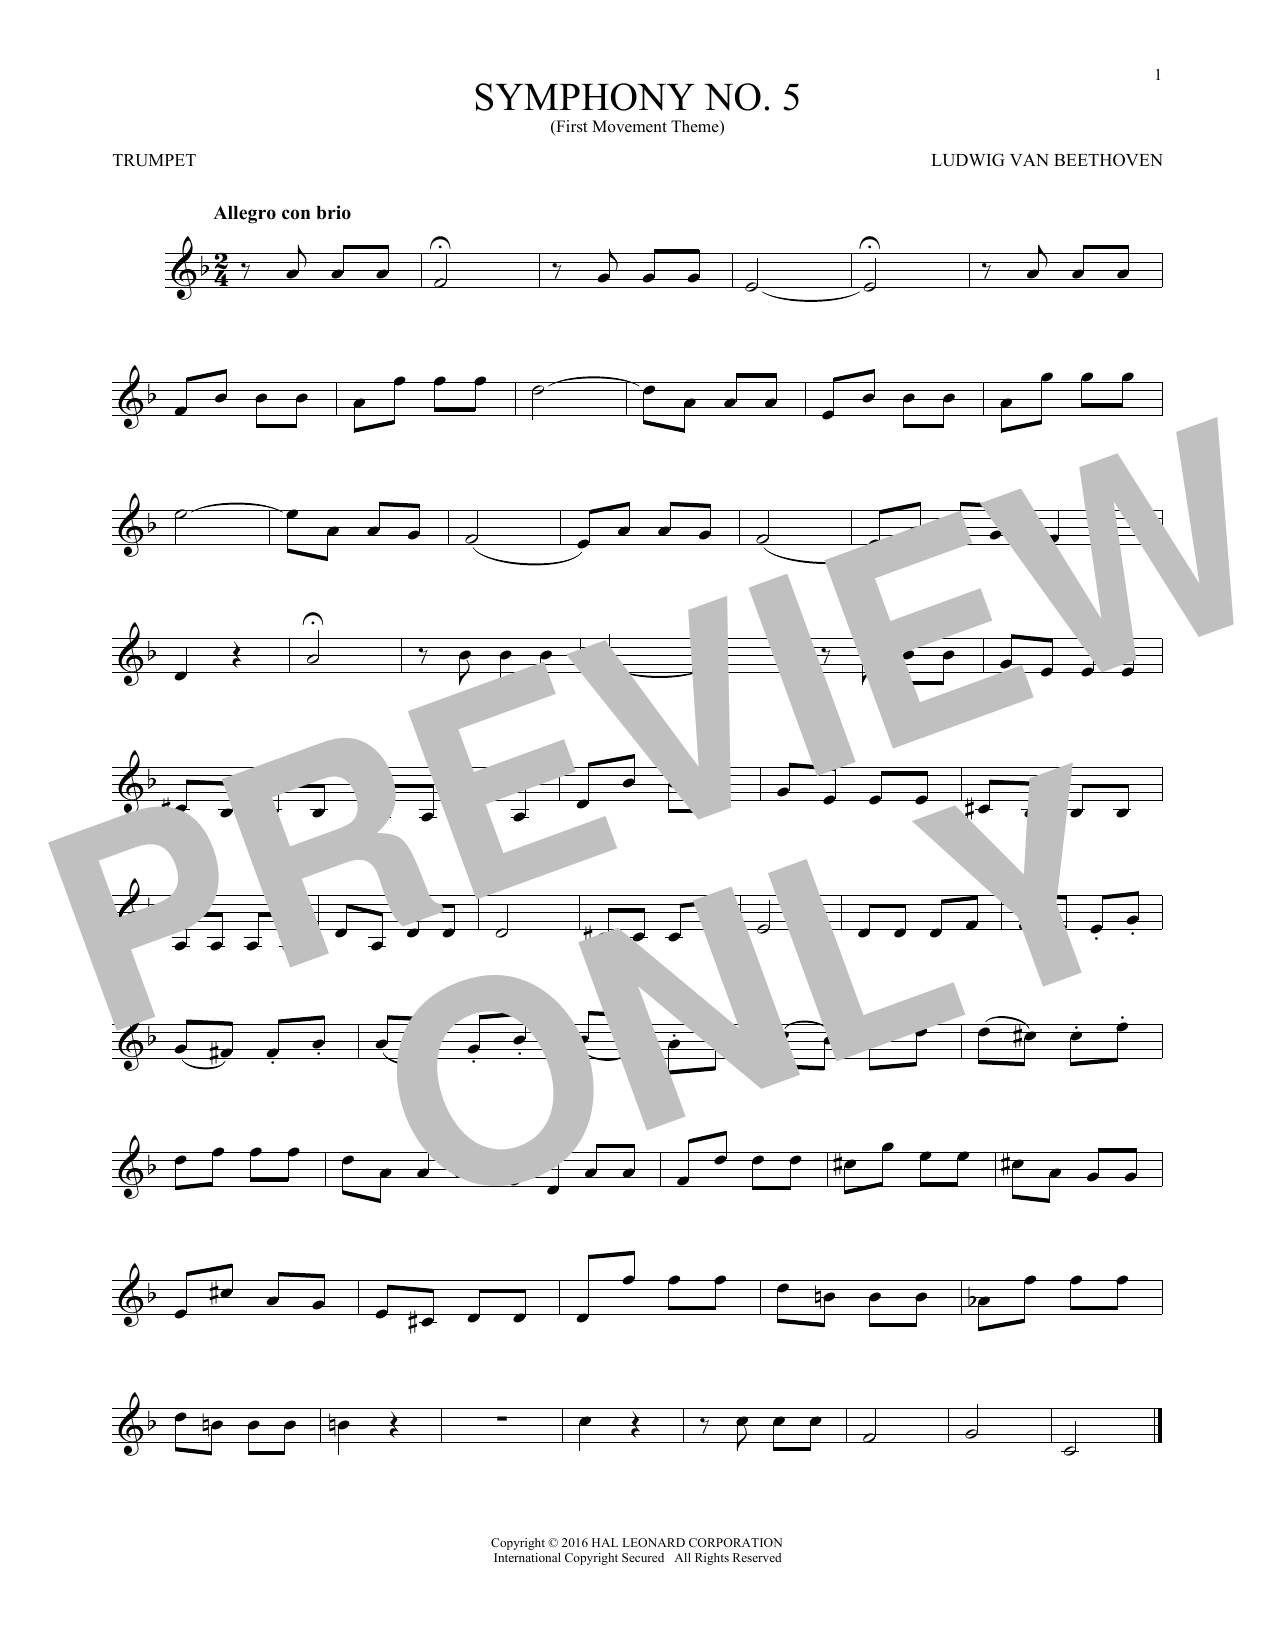 Symphony No. 5 In C Minor, First Movement Excerpt (Trumpet Solo)